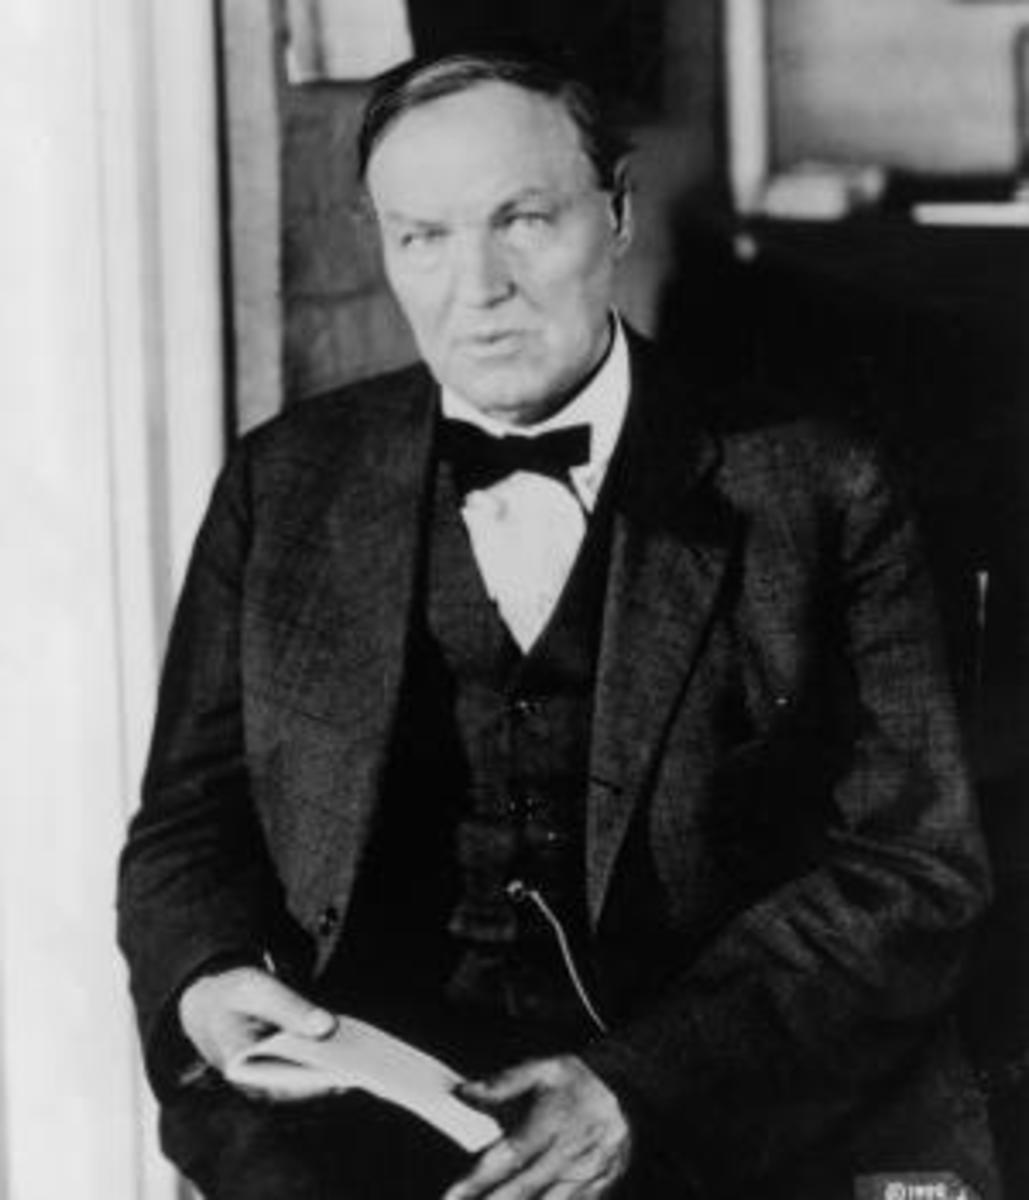 Defense attorney Clarence Darrow. (Credit: Hulton Archive/Getty Images)